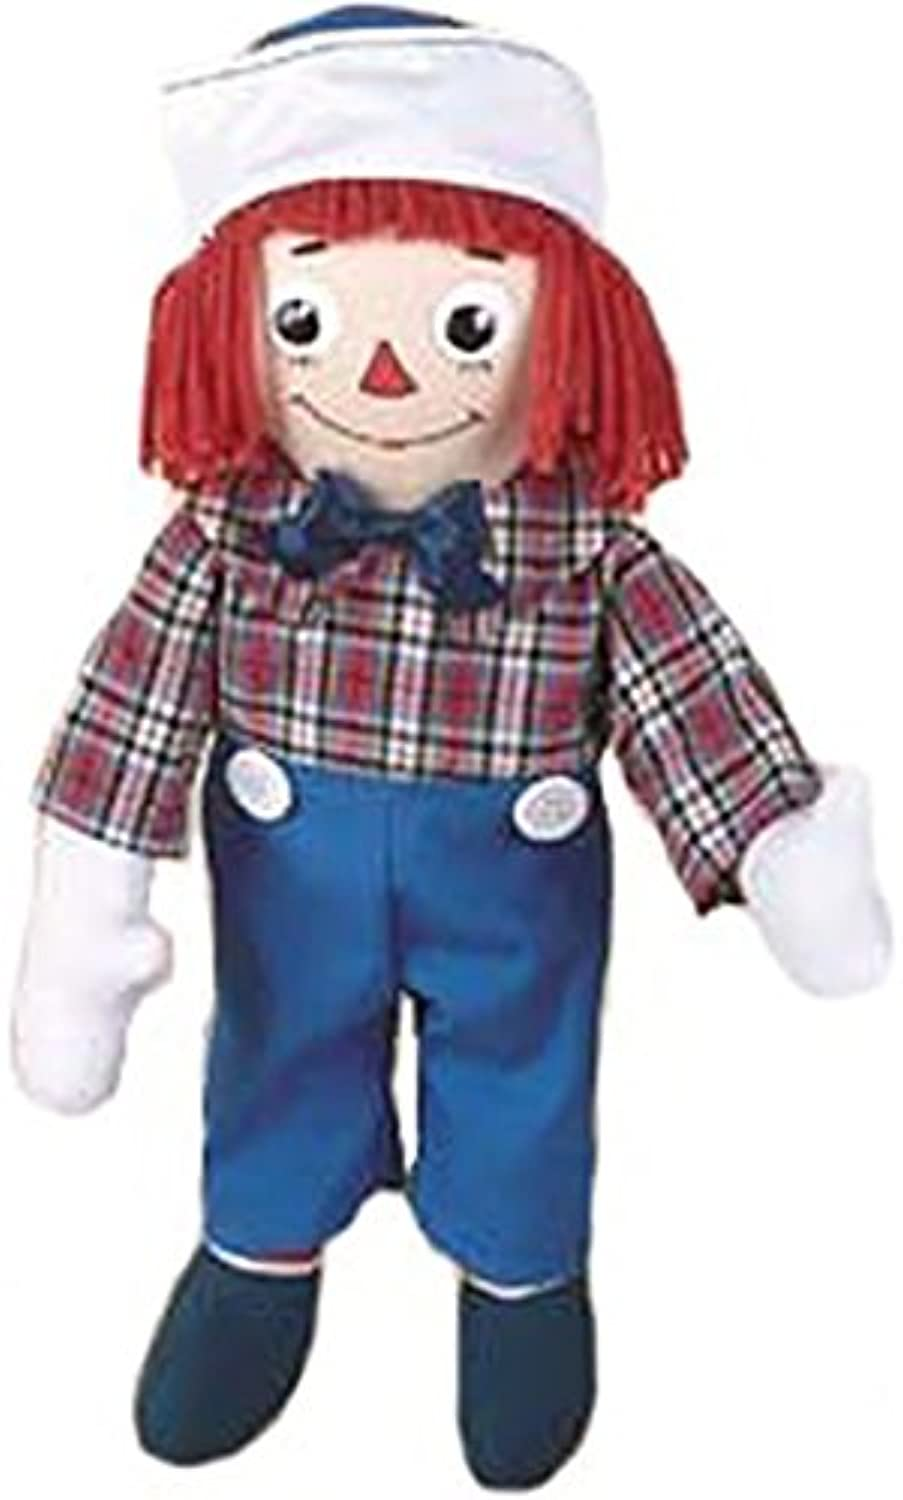 16 inch Raggedy Andy and the Wishing Stick Doll by Applause [並行輸入品]